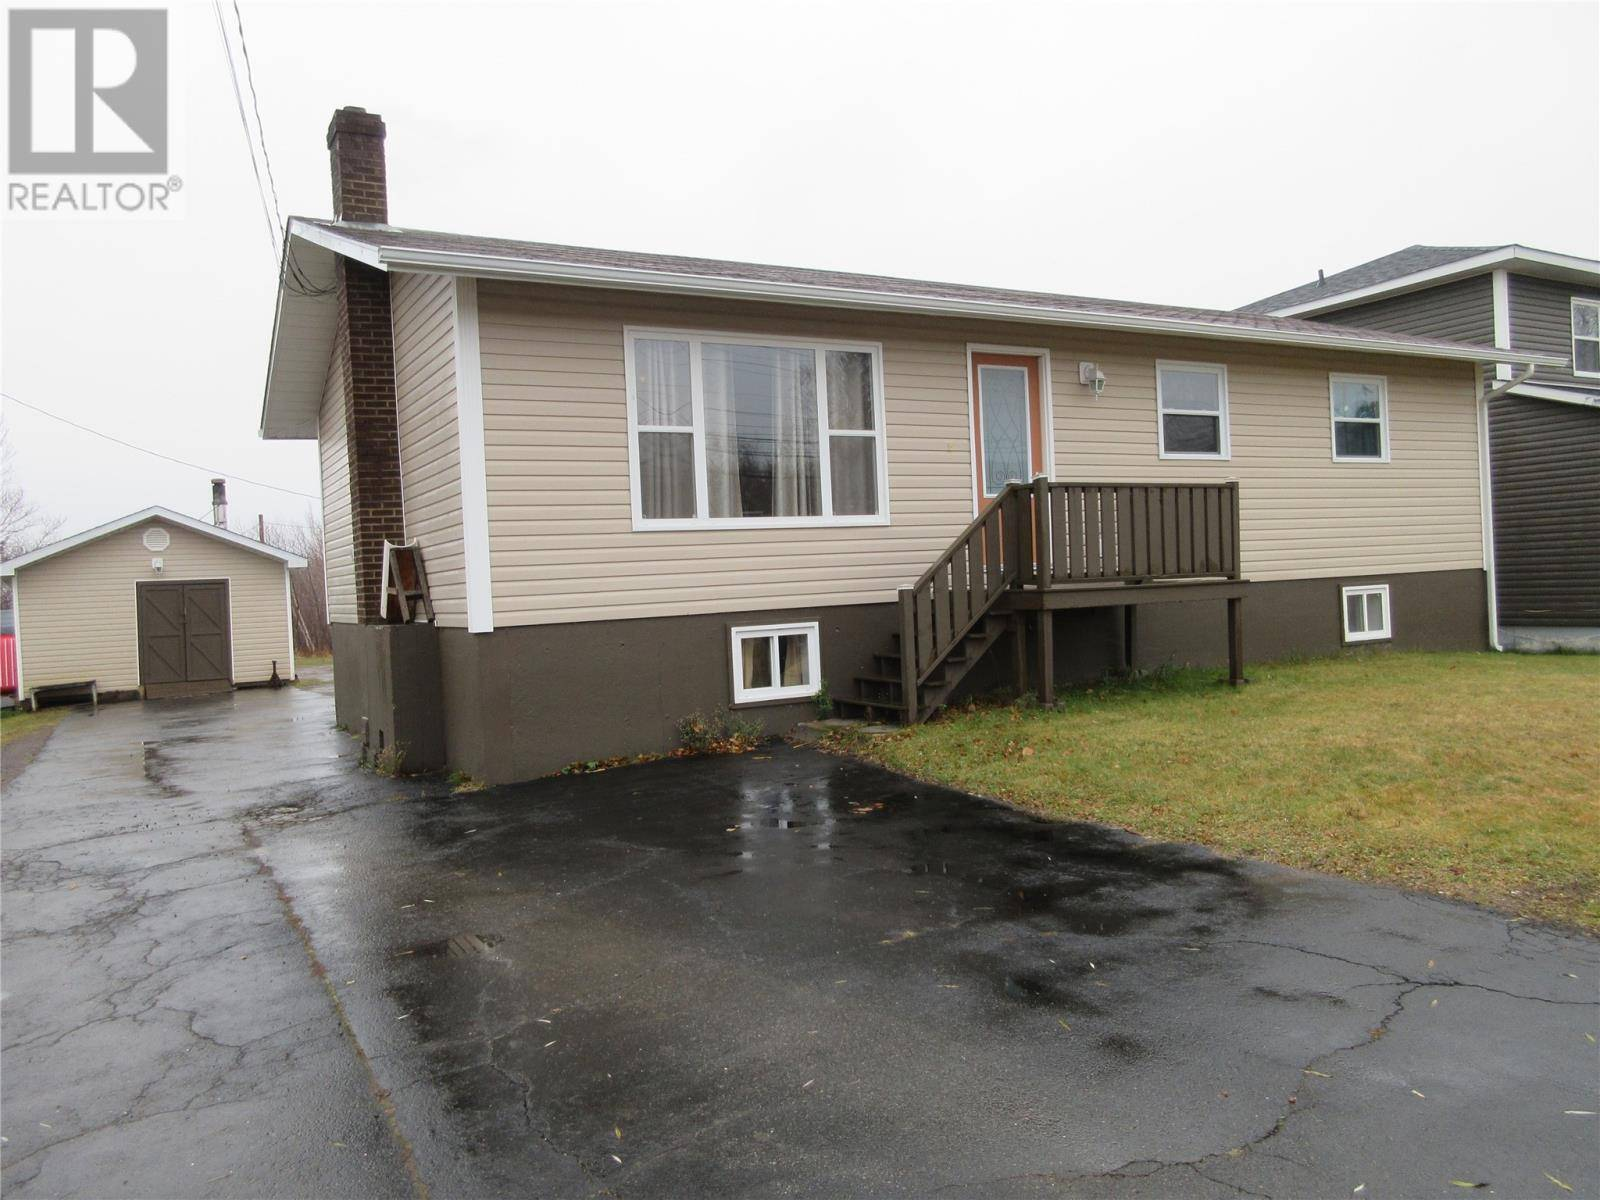 House for sale at 489 Main St Bishop's Falls Newfoundland - MLS: 1207395